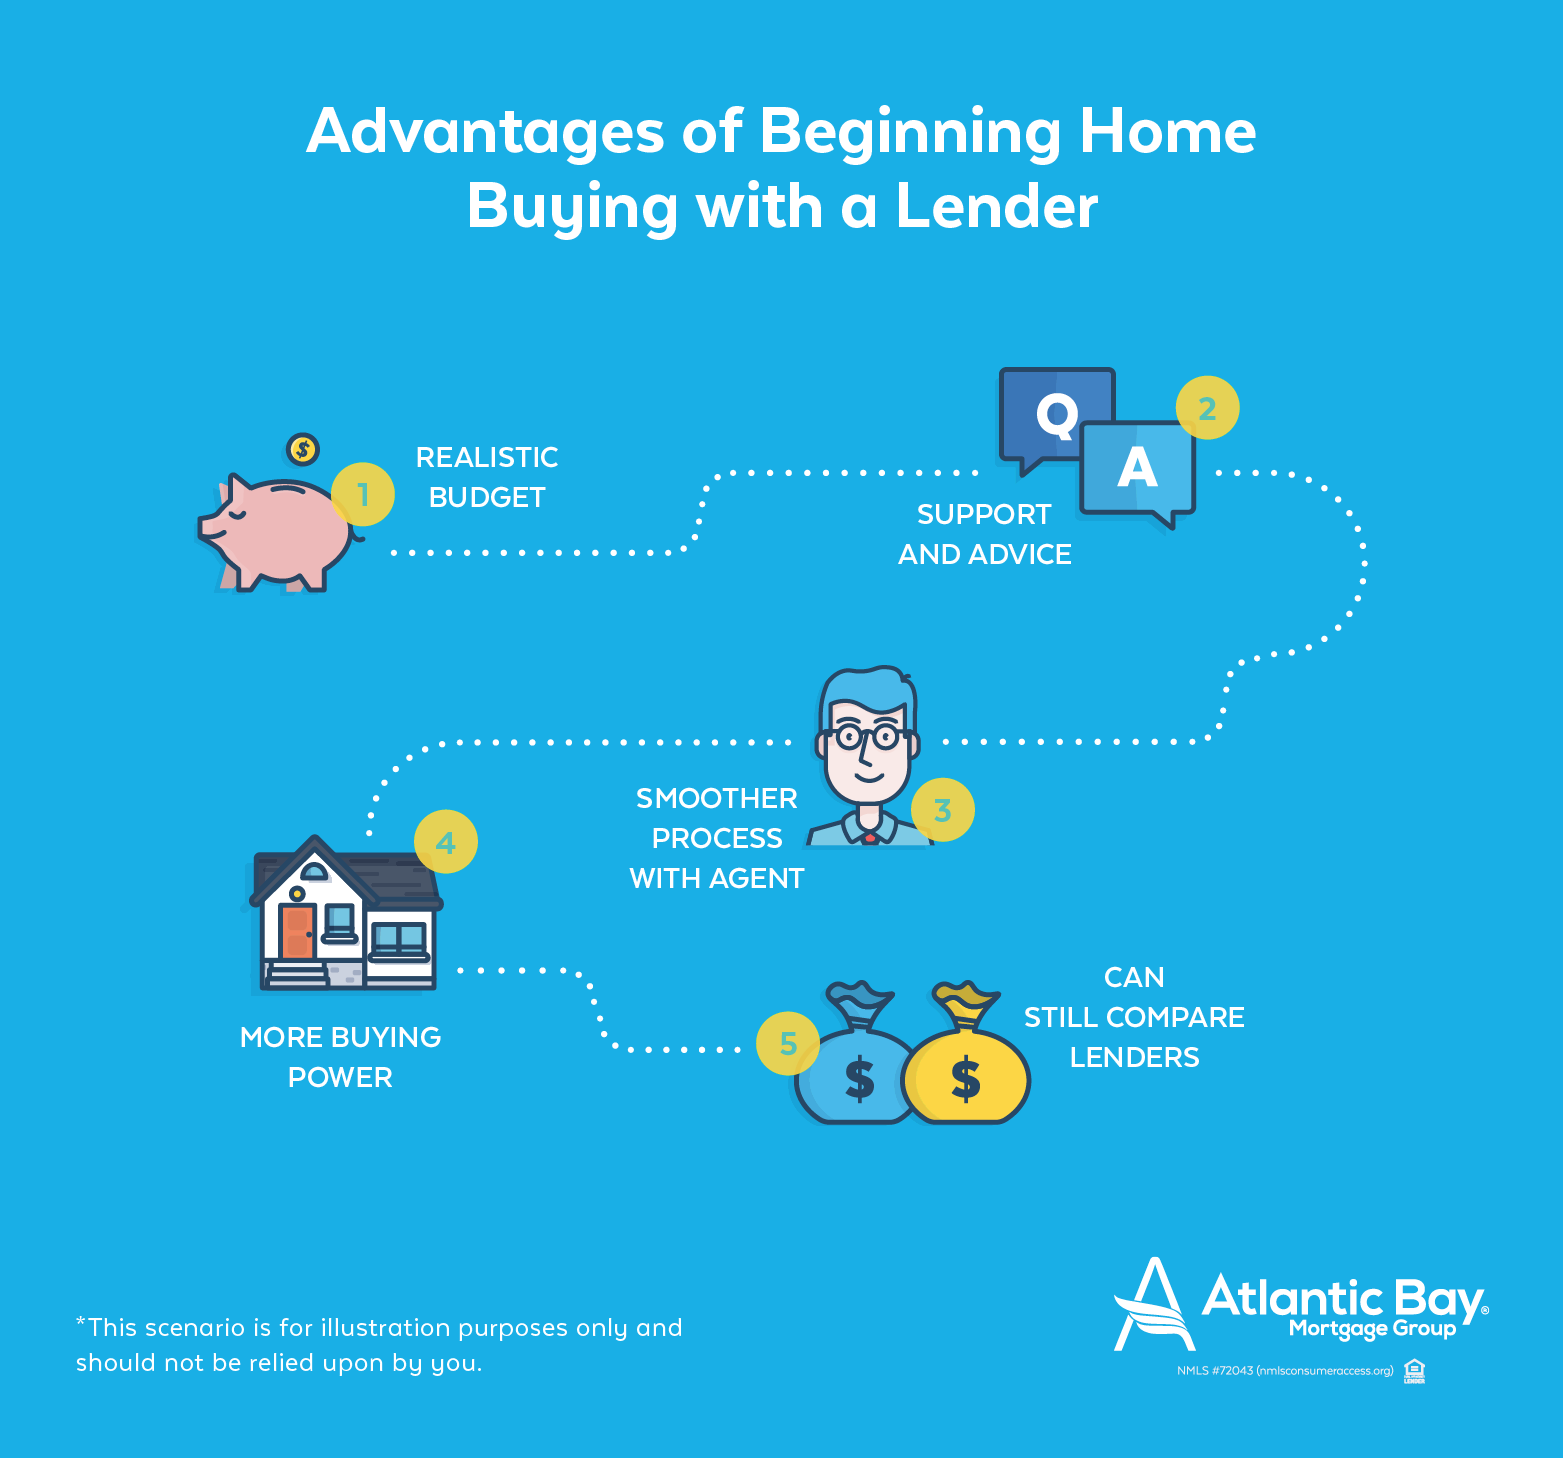 Advantages of Beginning with a Lender